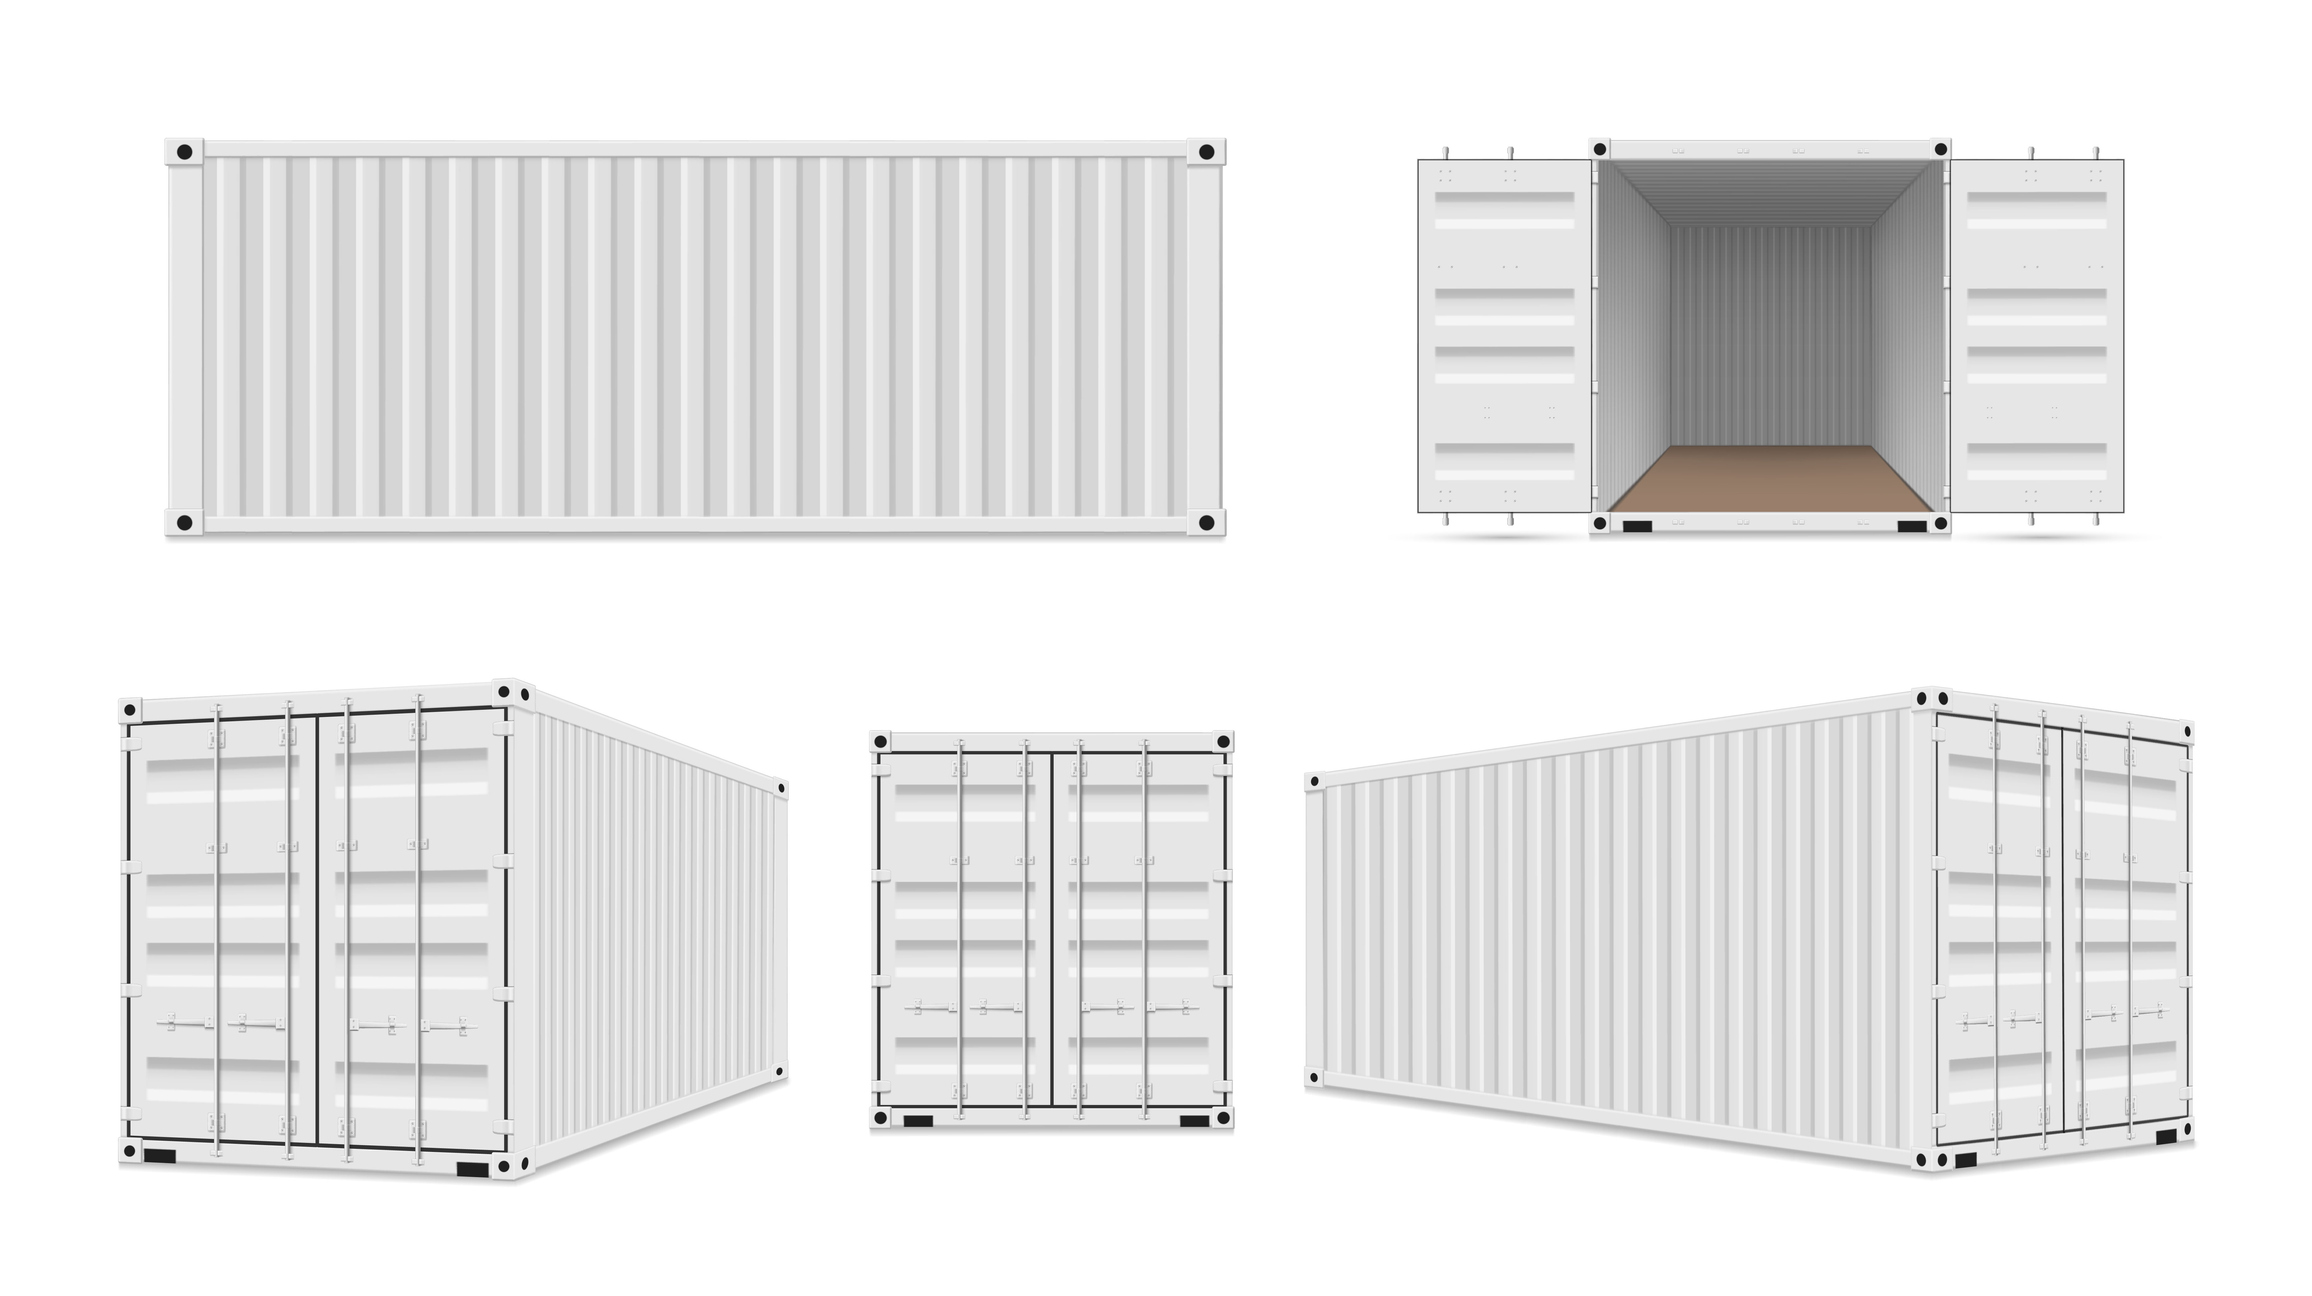 white conex box shown from different angles